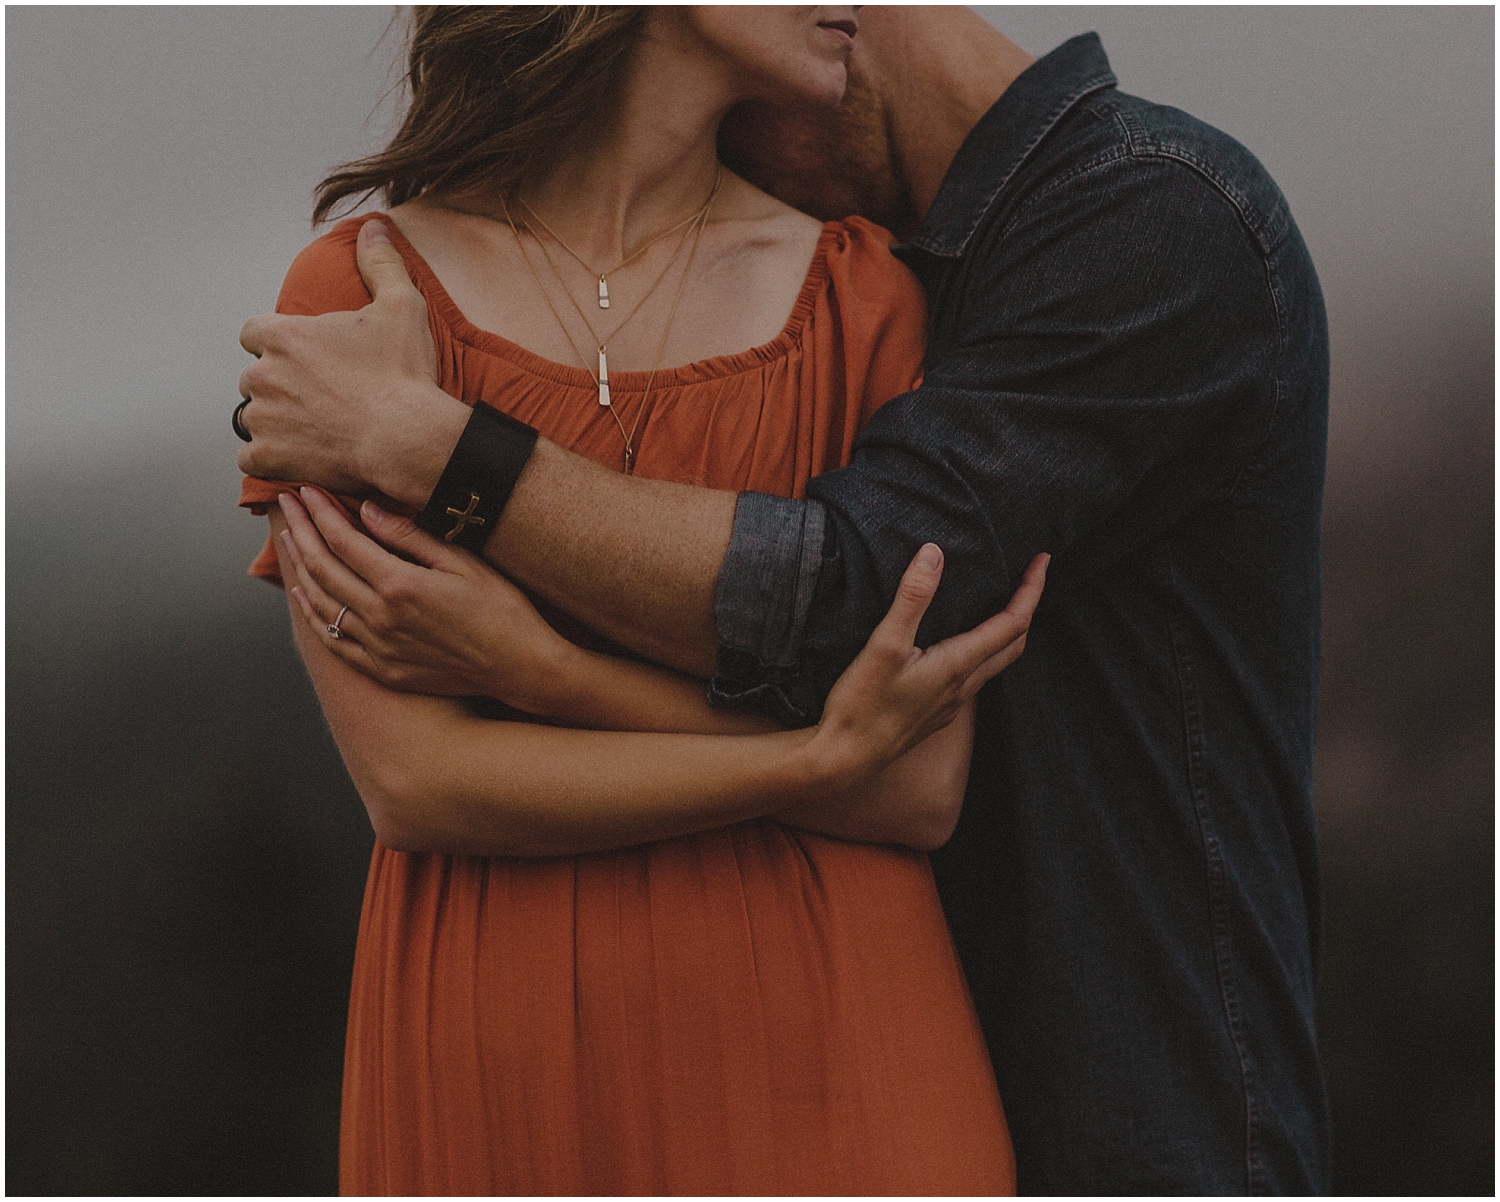 a couple wrapping their arms around each other